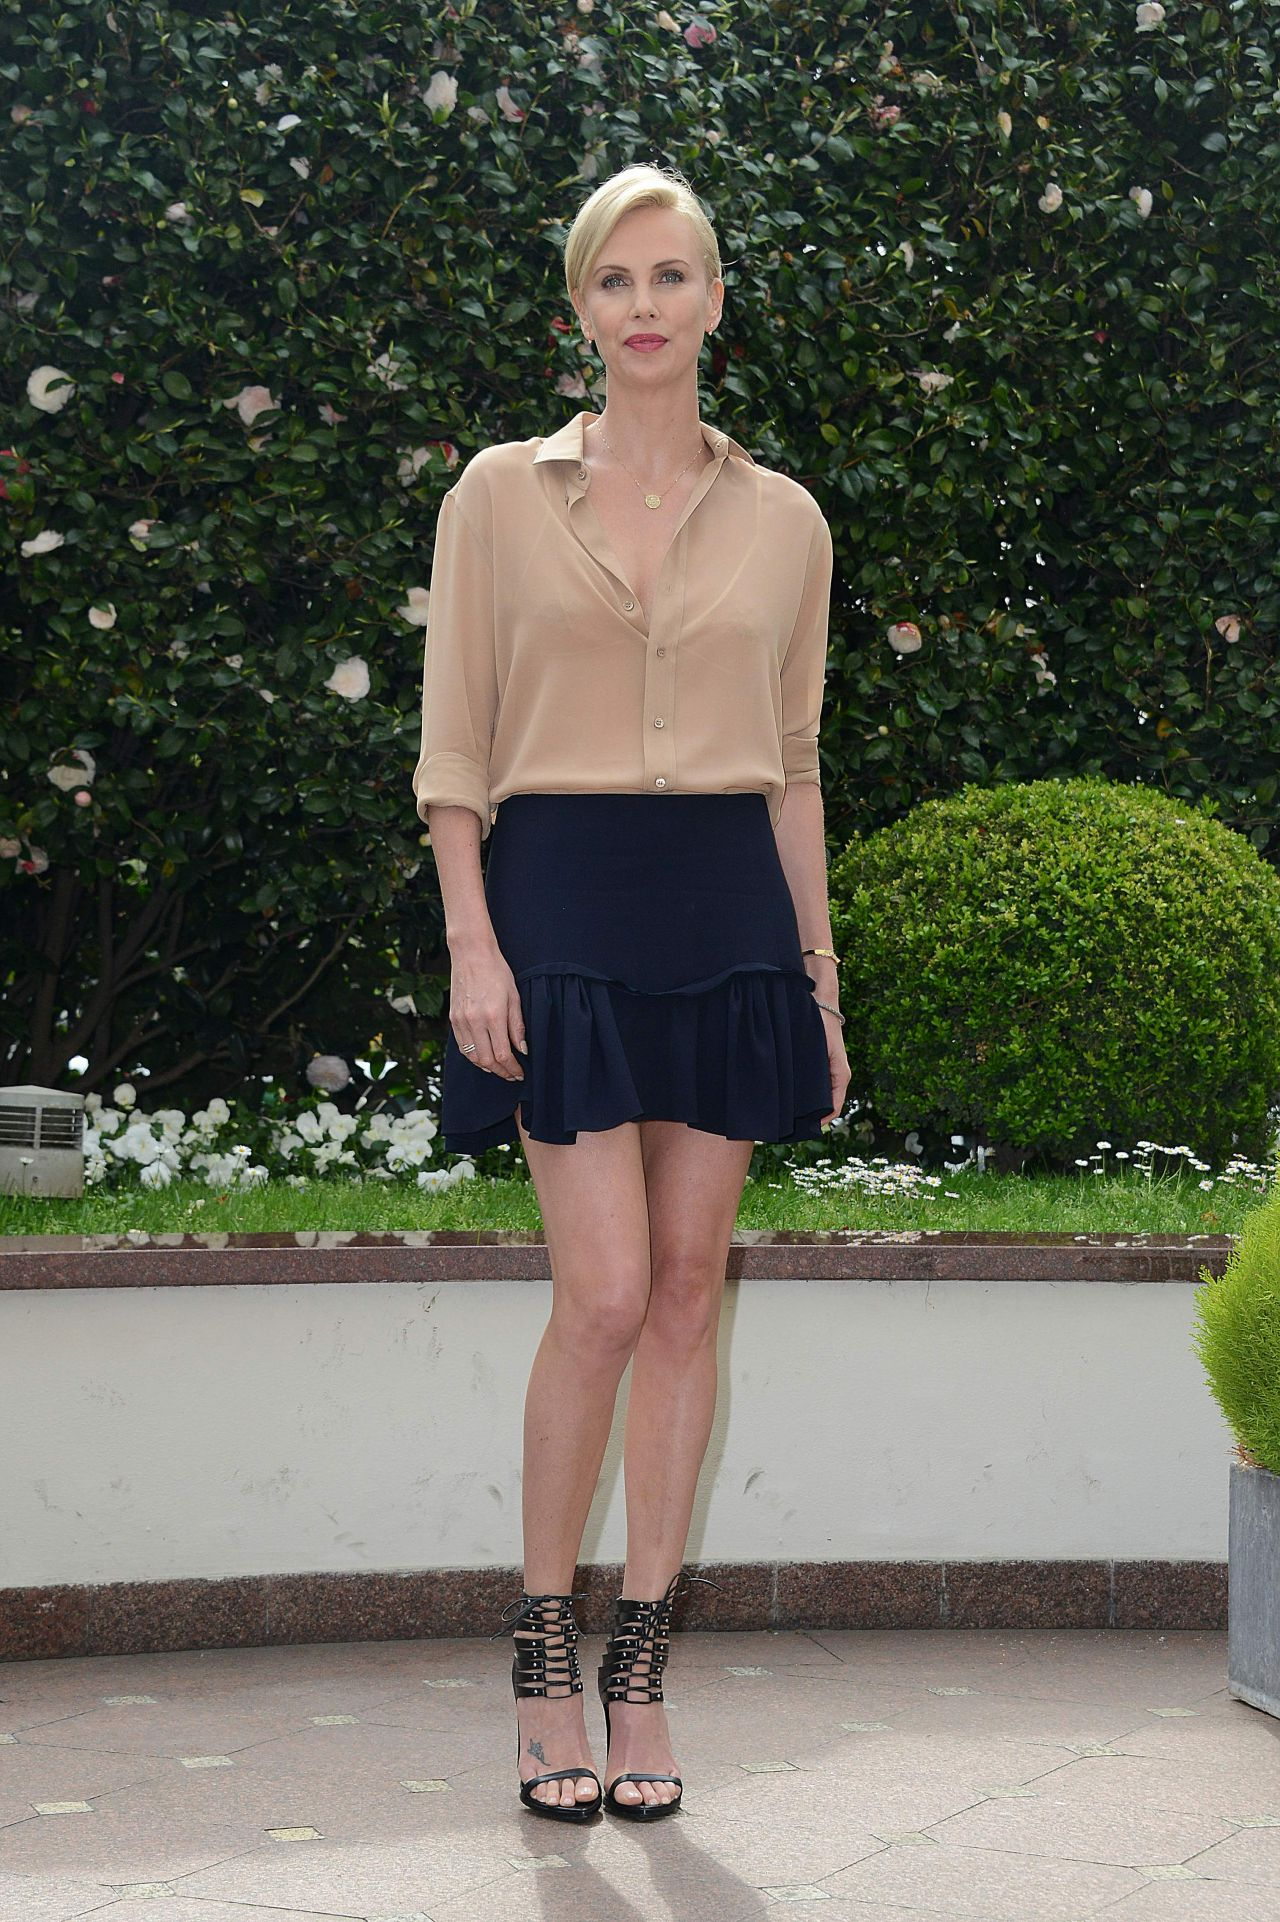 charlize-theron-the-huntsman-and-the-ice-queen-photocall-in-milan-italy-1